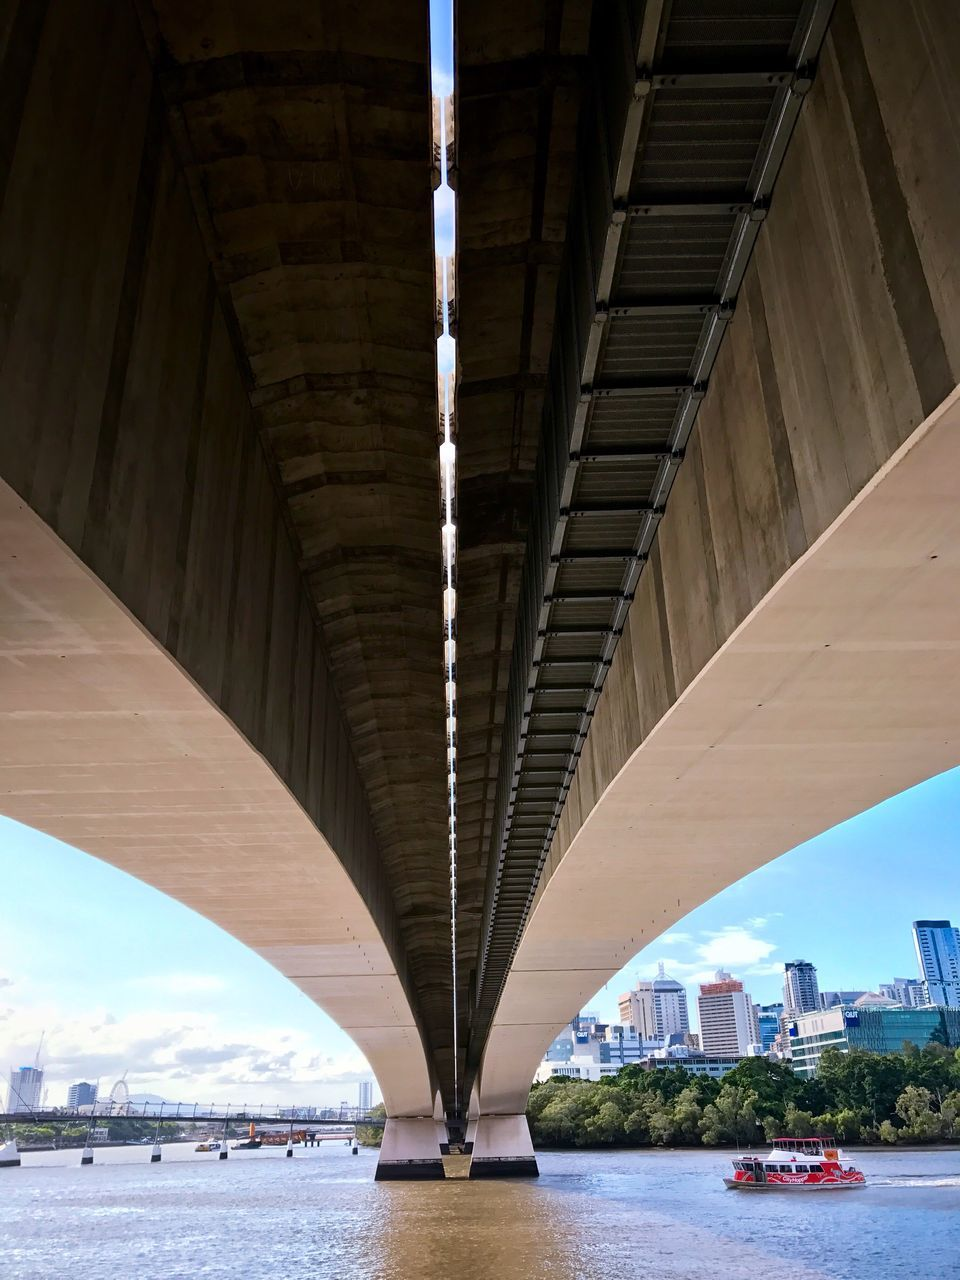 bridge - man made structure, connection, architecture, transportation, engineering, built structure, below, river, underneath, bridge, arch, water, under, day, waterfront, outdoors, city, covered bridge, road, no people